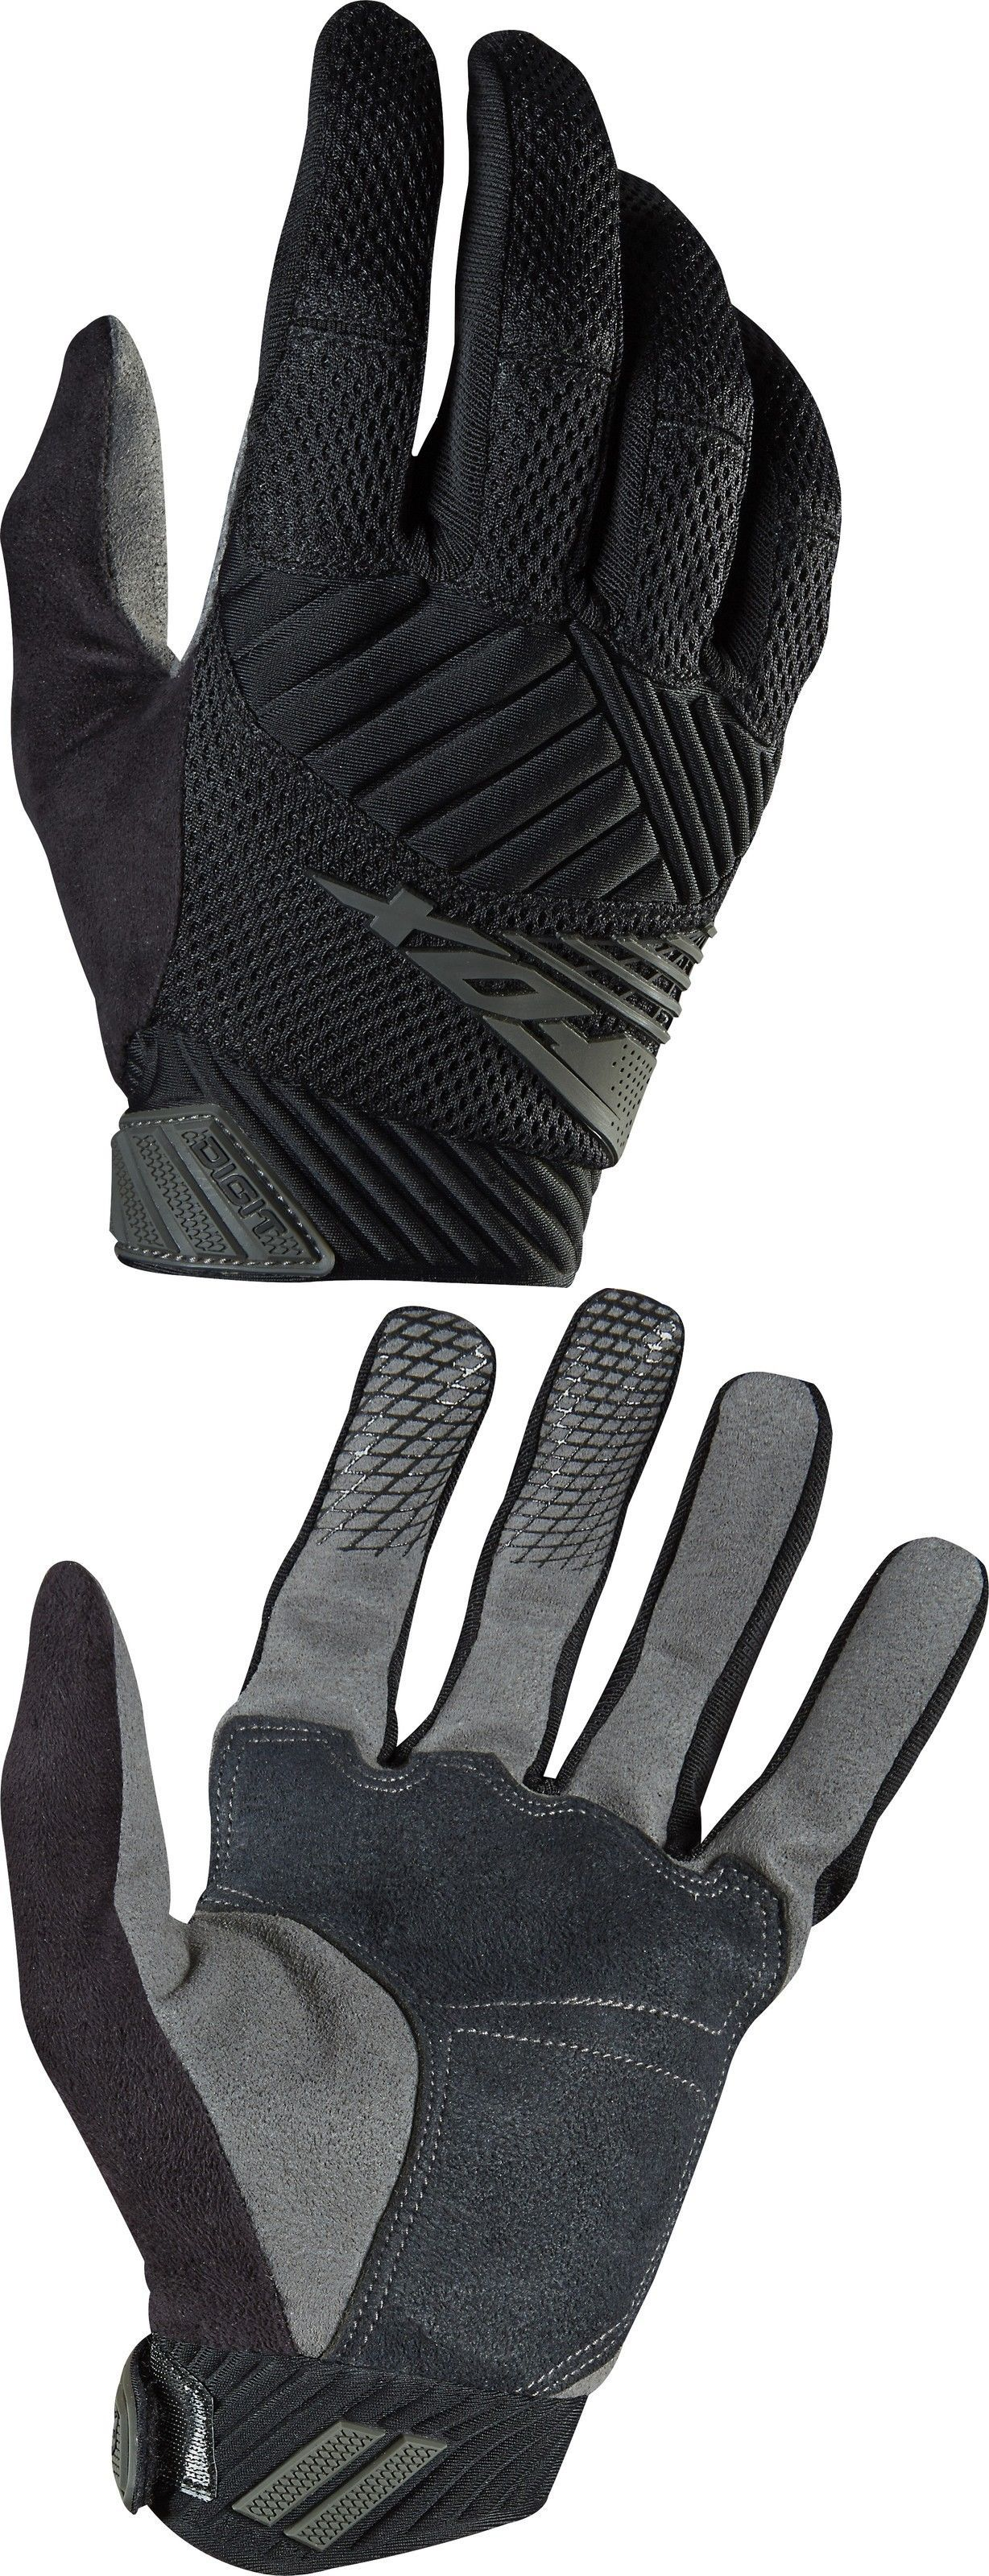 Gloves fox racing digit glove black buy it now only